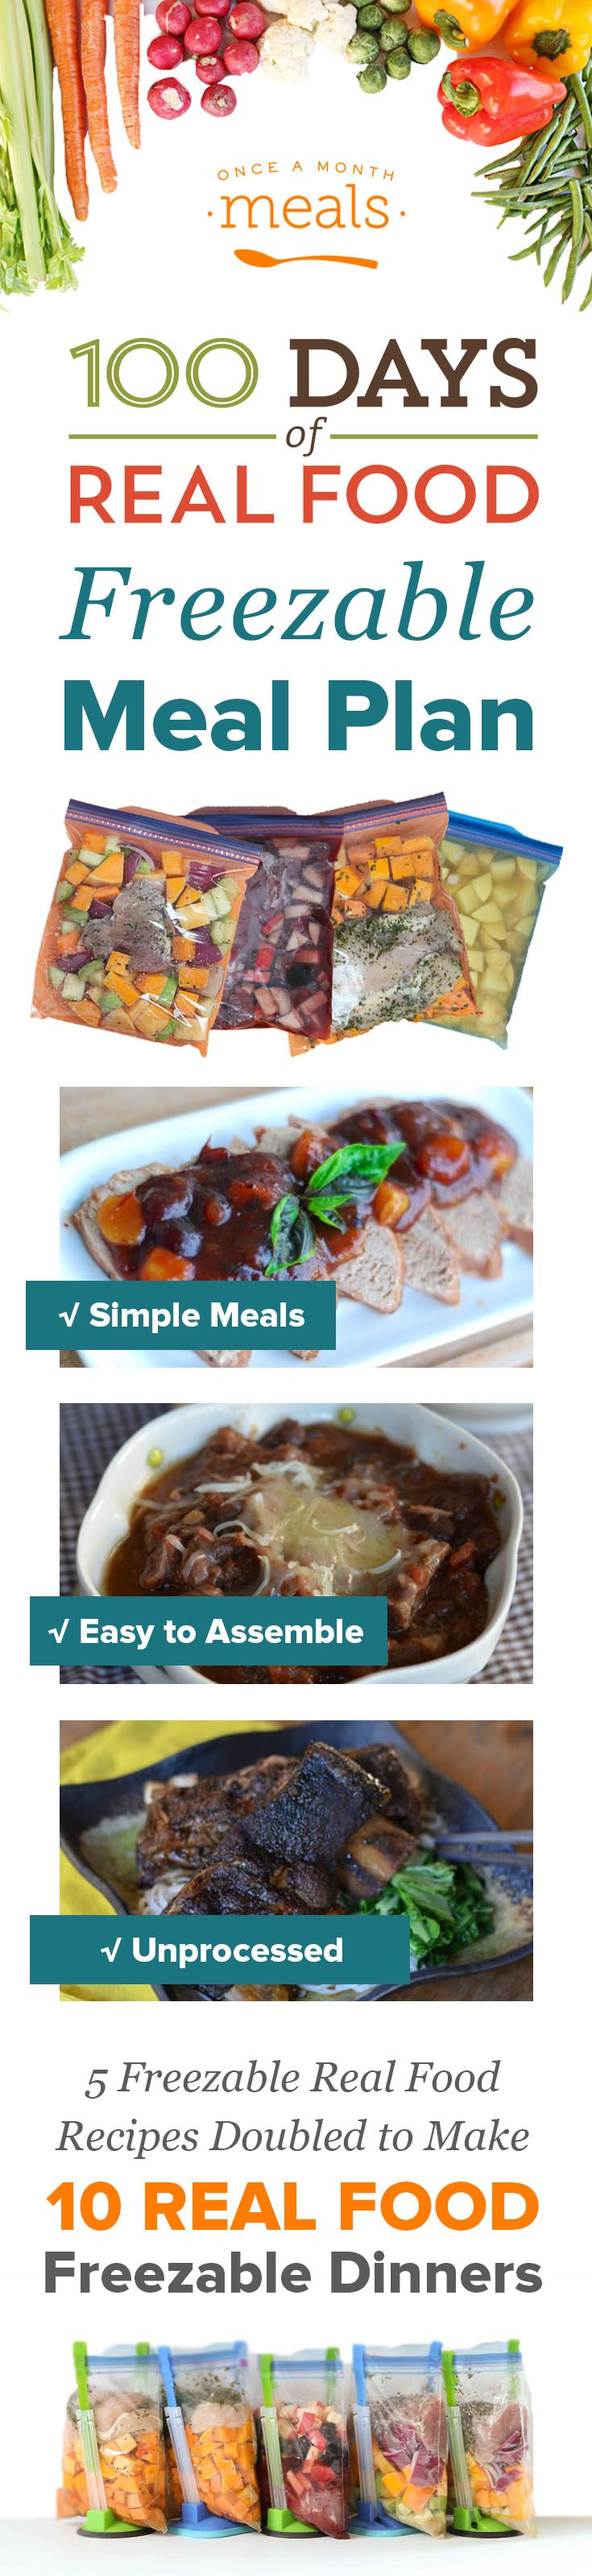 Check out this custom menu built by 100 Days of Real Food for tasty freezer meals.  5 recipes doubled to 10 dinners, your Slow Cooker will come in use this winter.